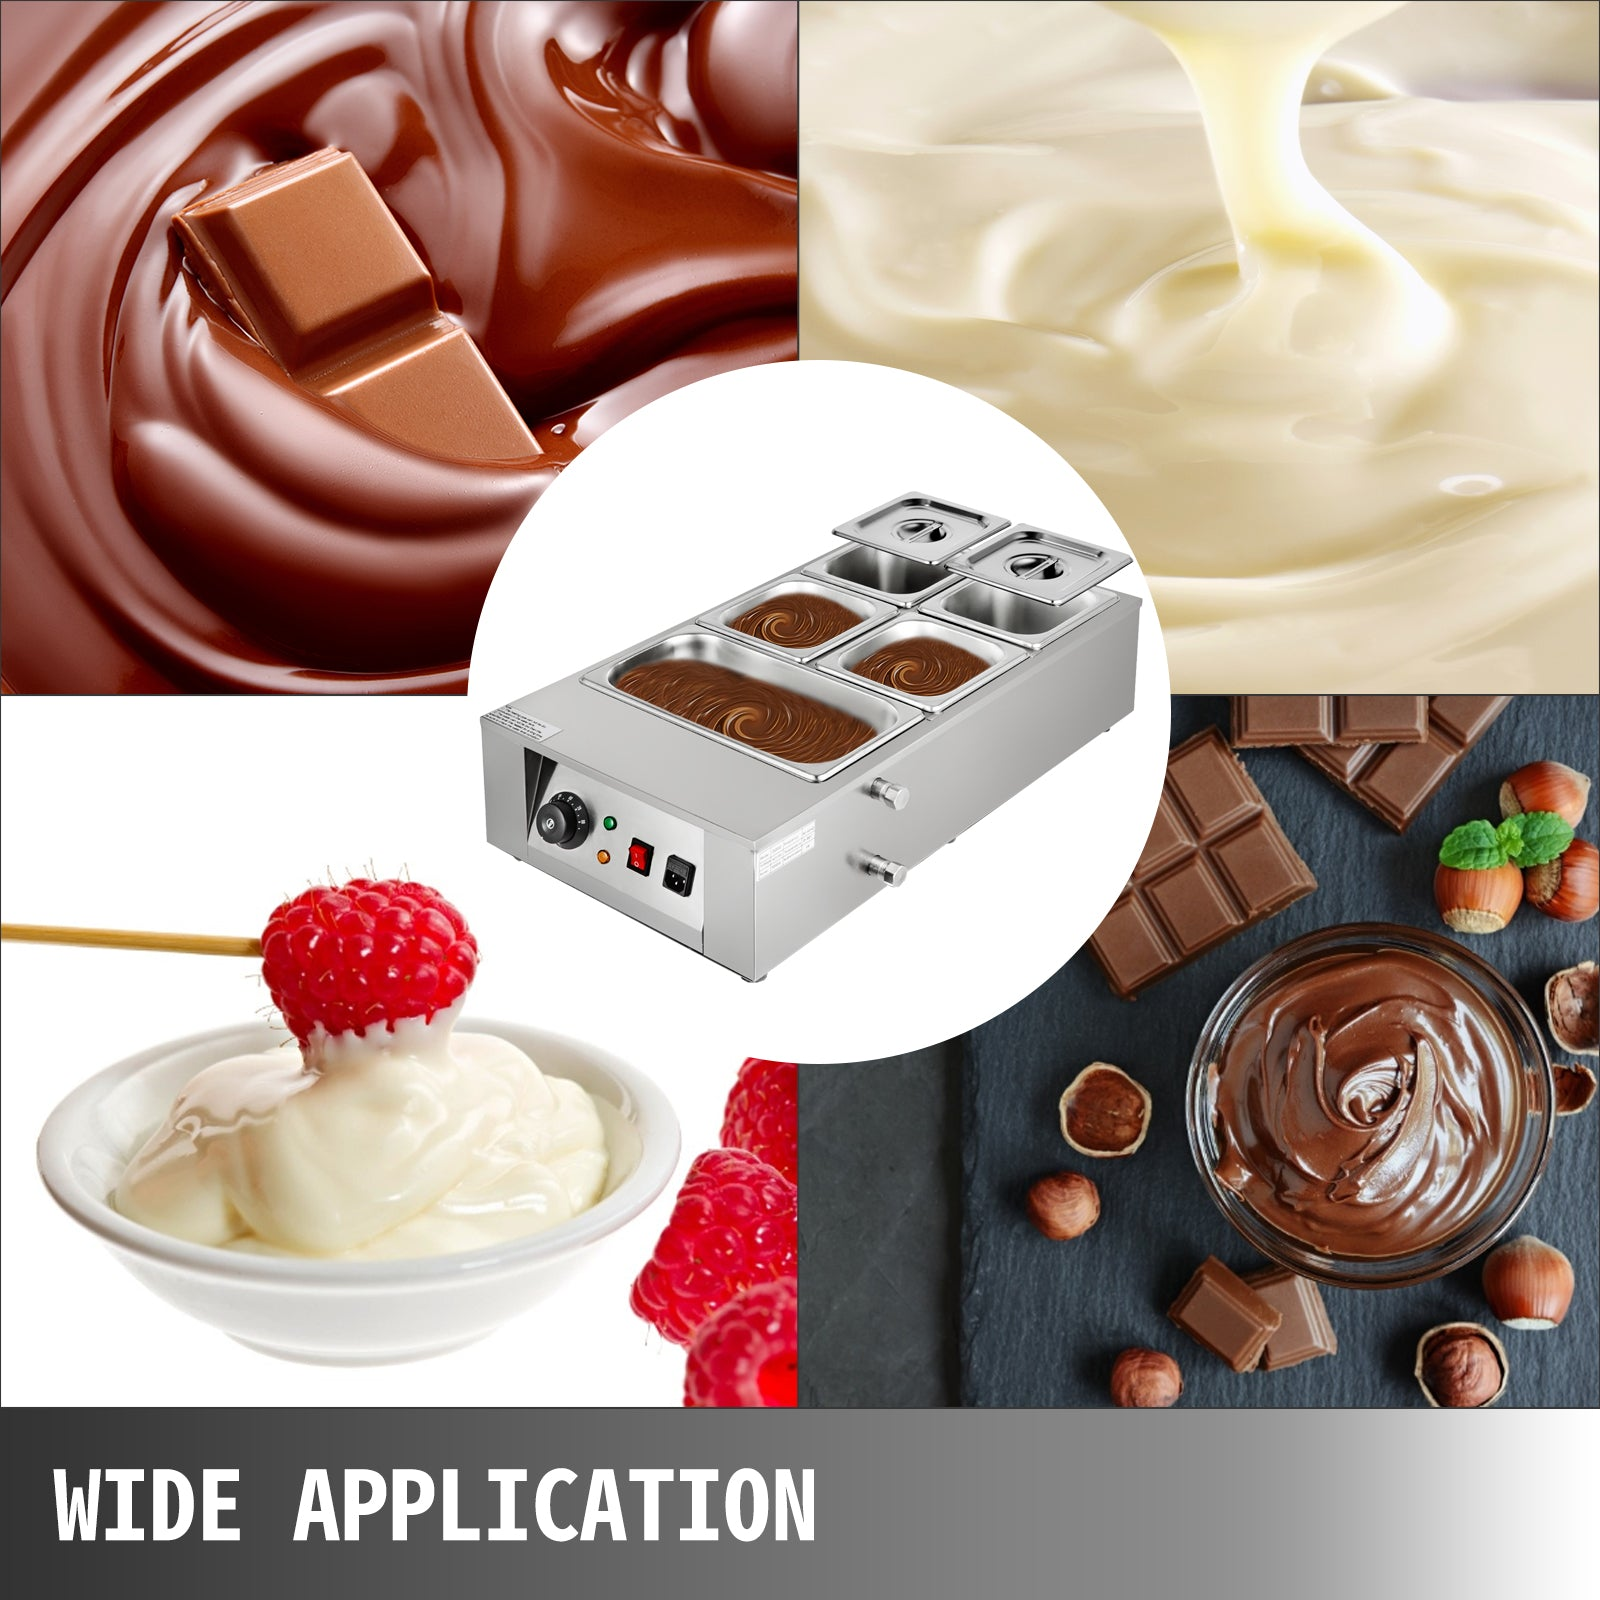 12kg Electric Chocolate Tempering Machine Melter Maker W/5 Melting Pot Dining